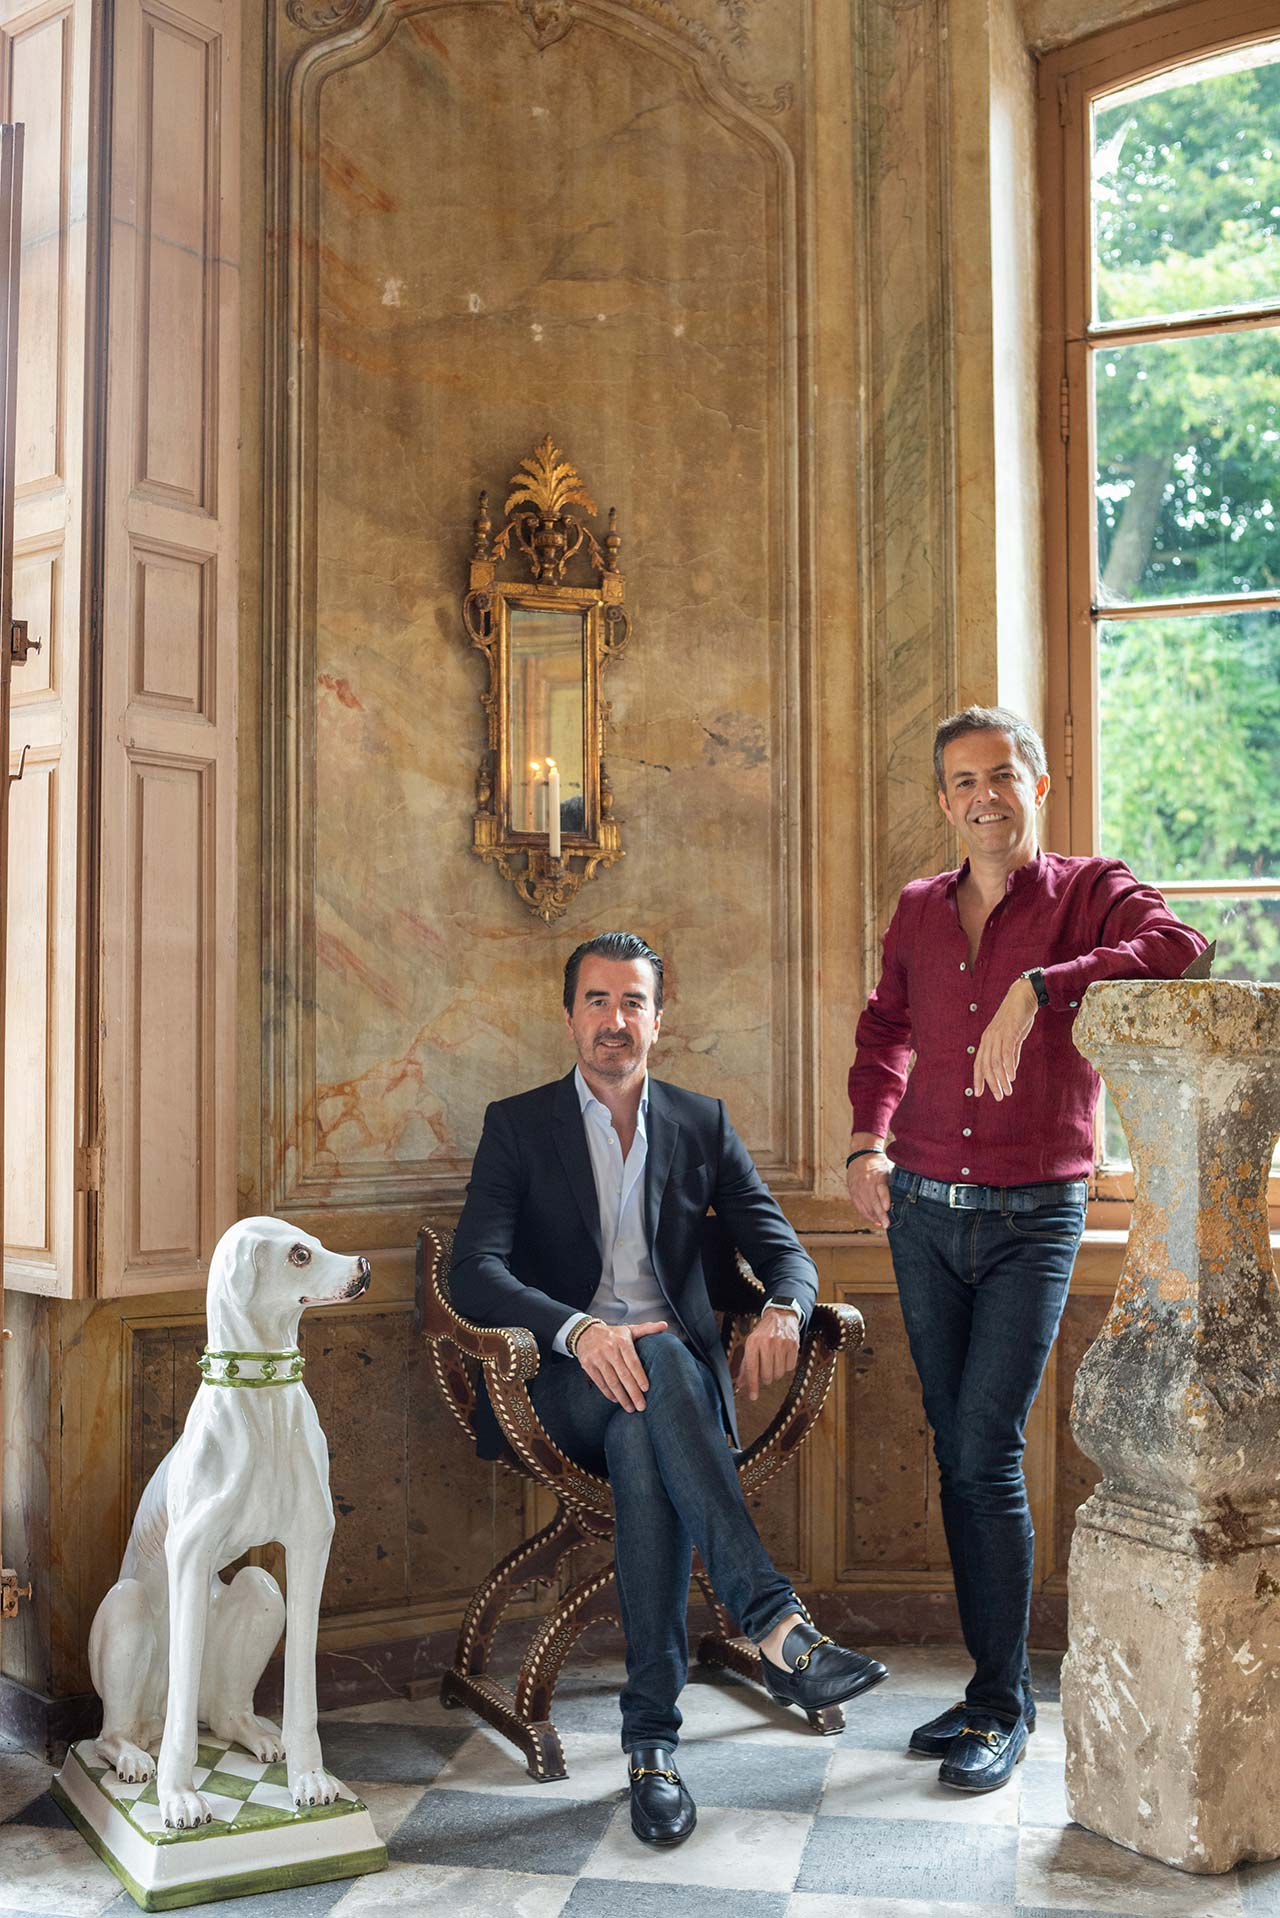 John Coury and Florent Maillard portrait. Photo by Francis Amiand.